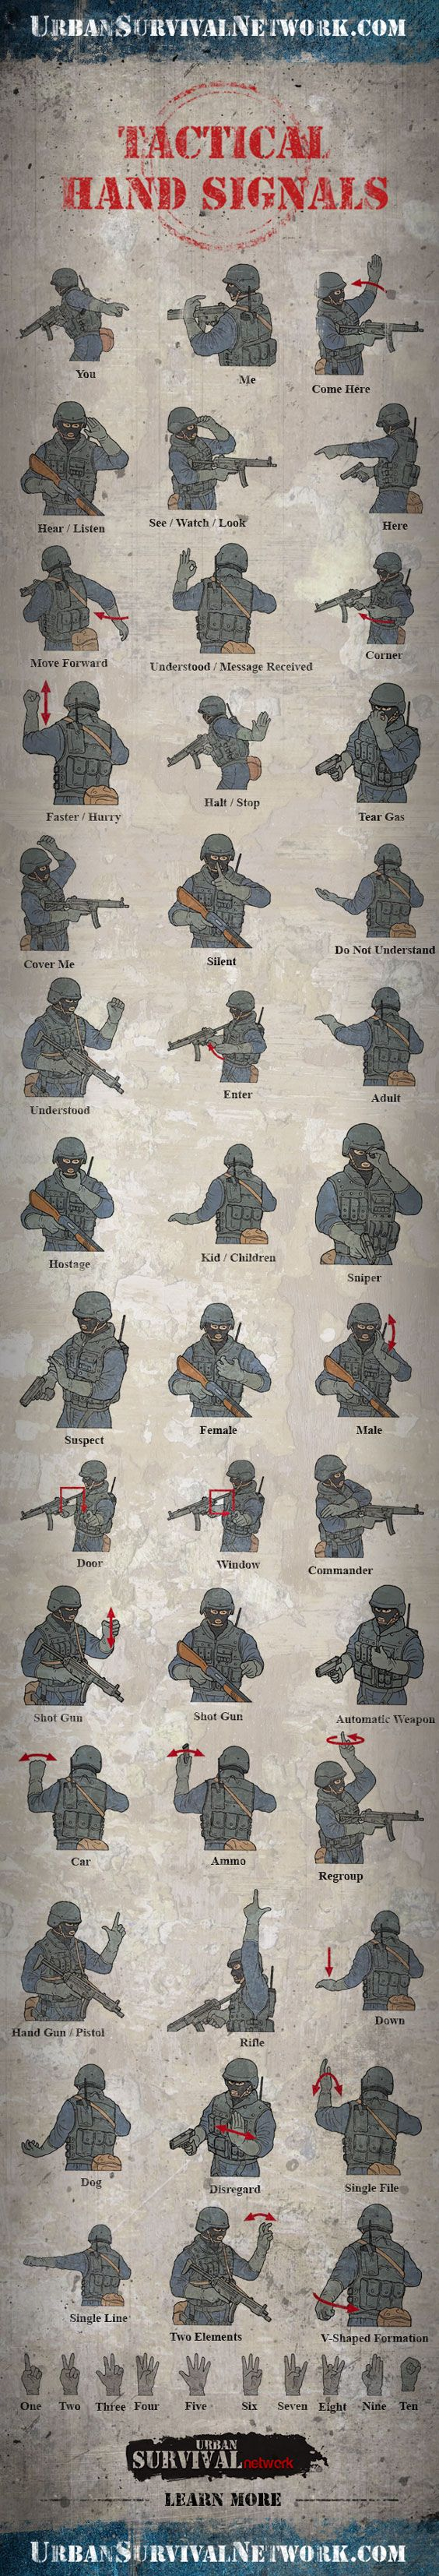 Tactical Hand Signals. Whether you use these or you see them being used, you will know what the next move is.